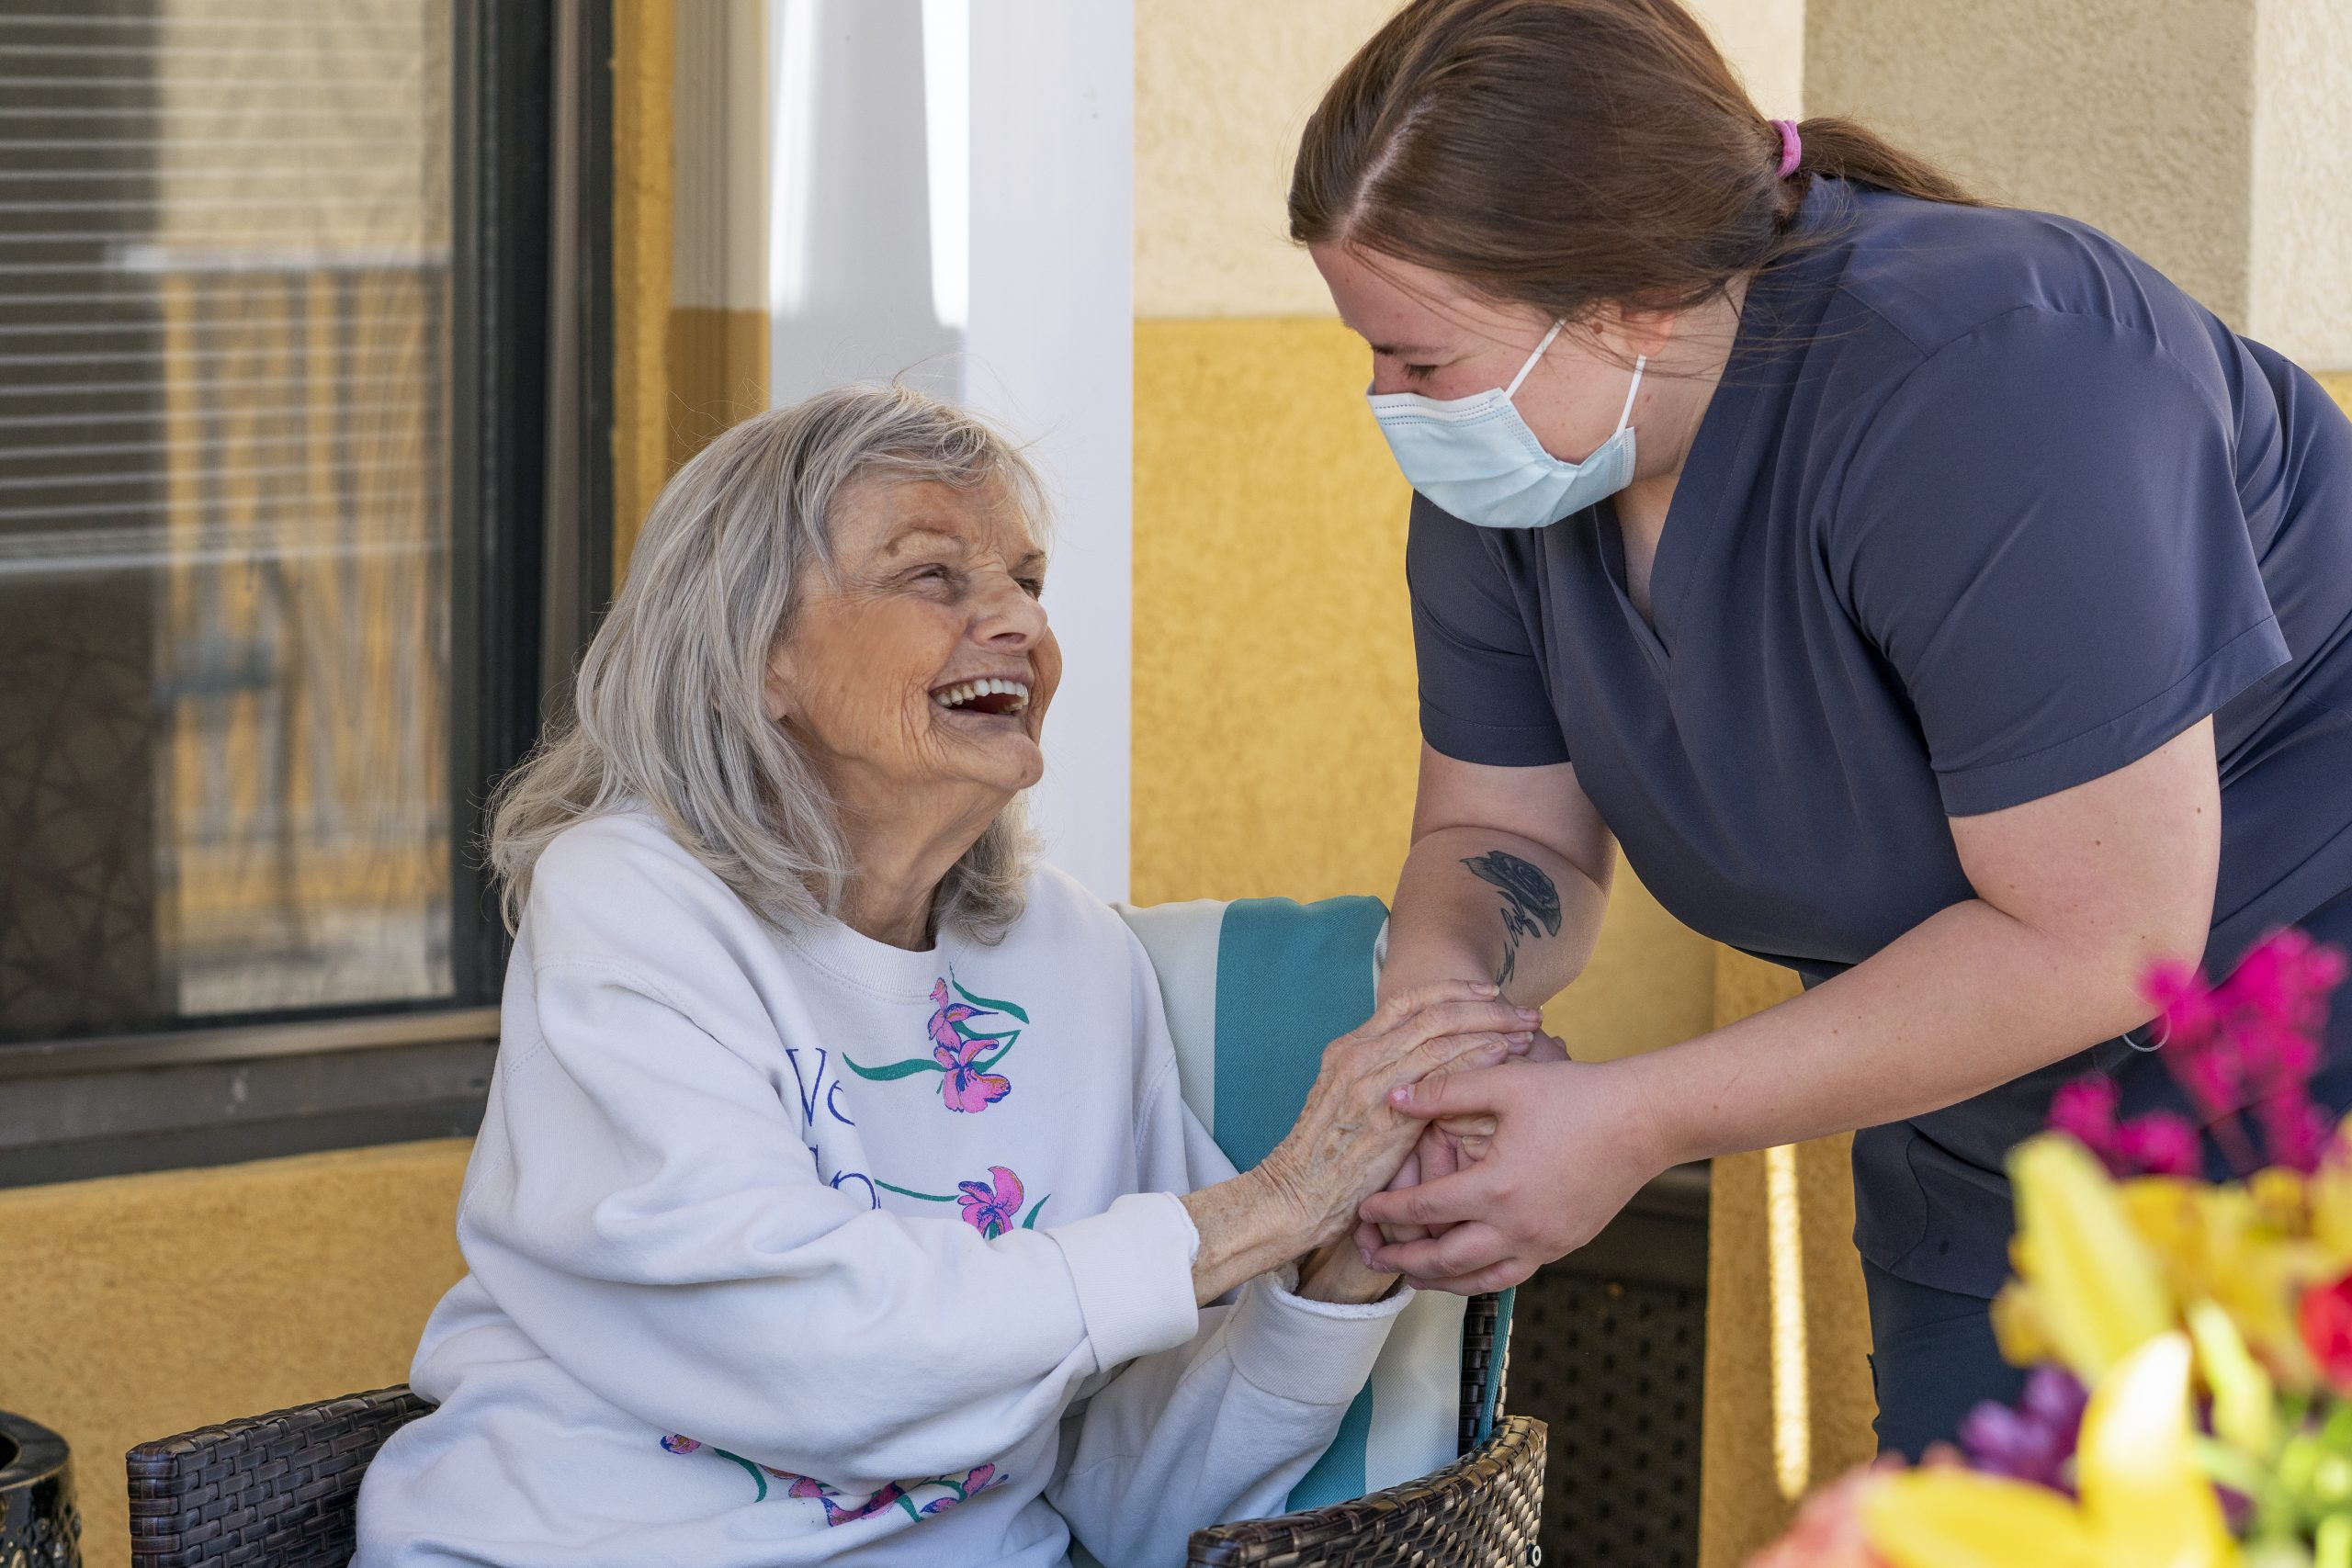 Stonerise Parkersburg patient and team member smiling in outdoor area